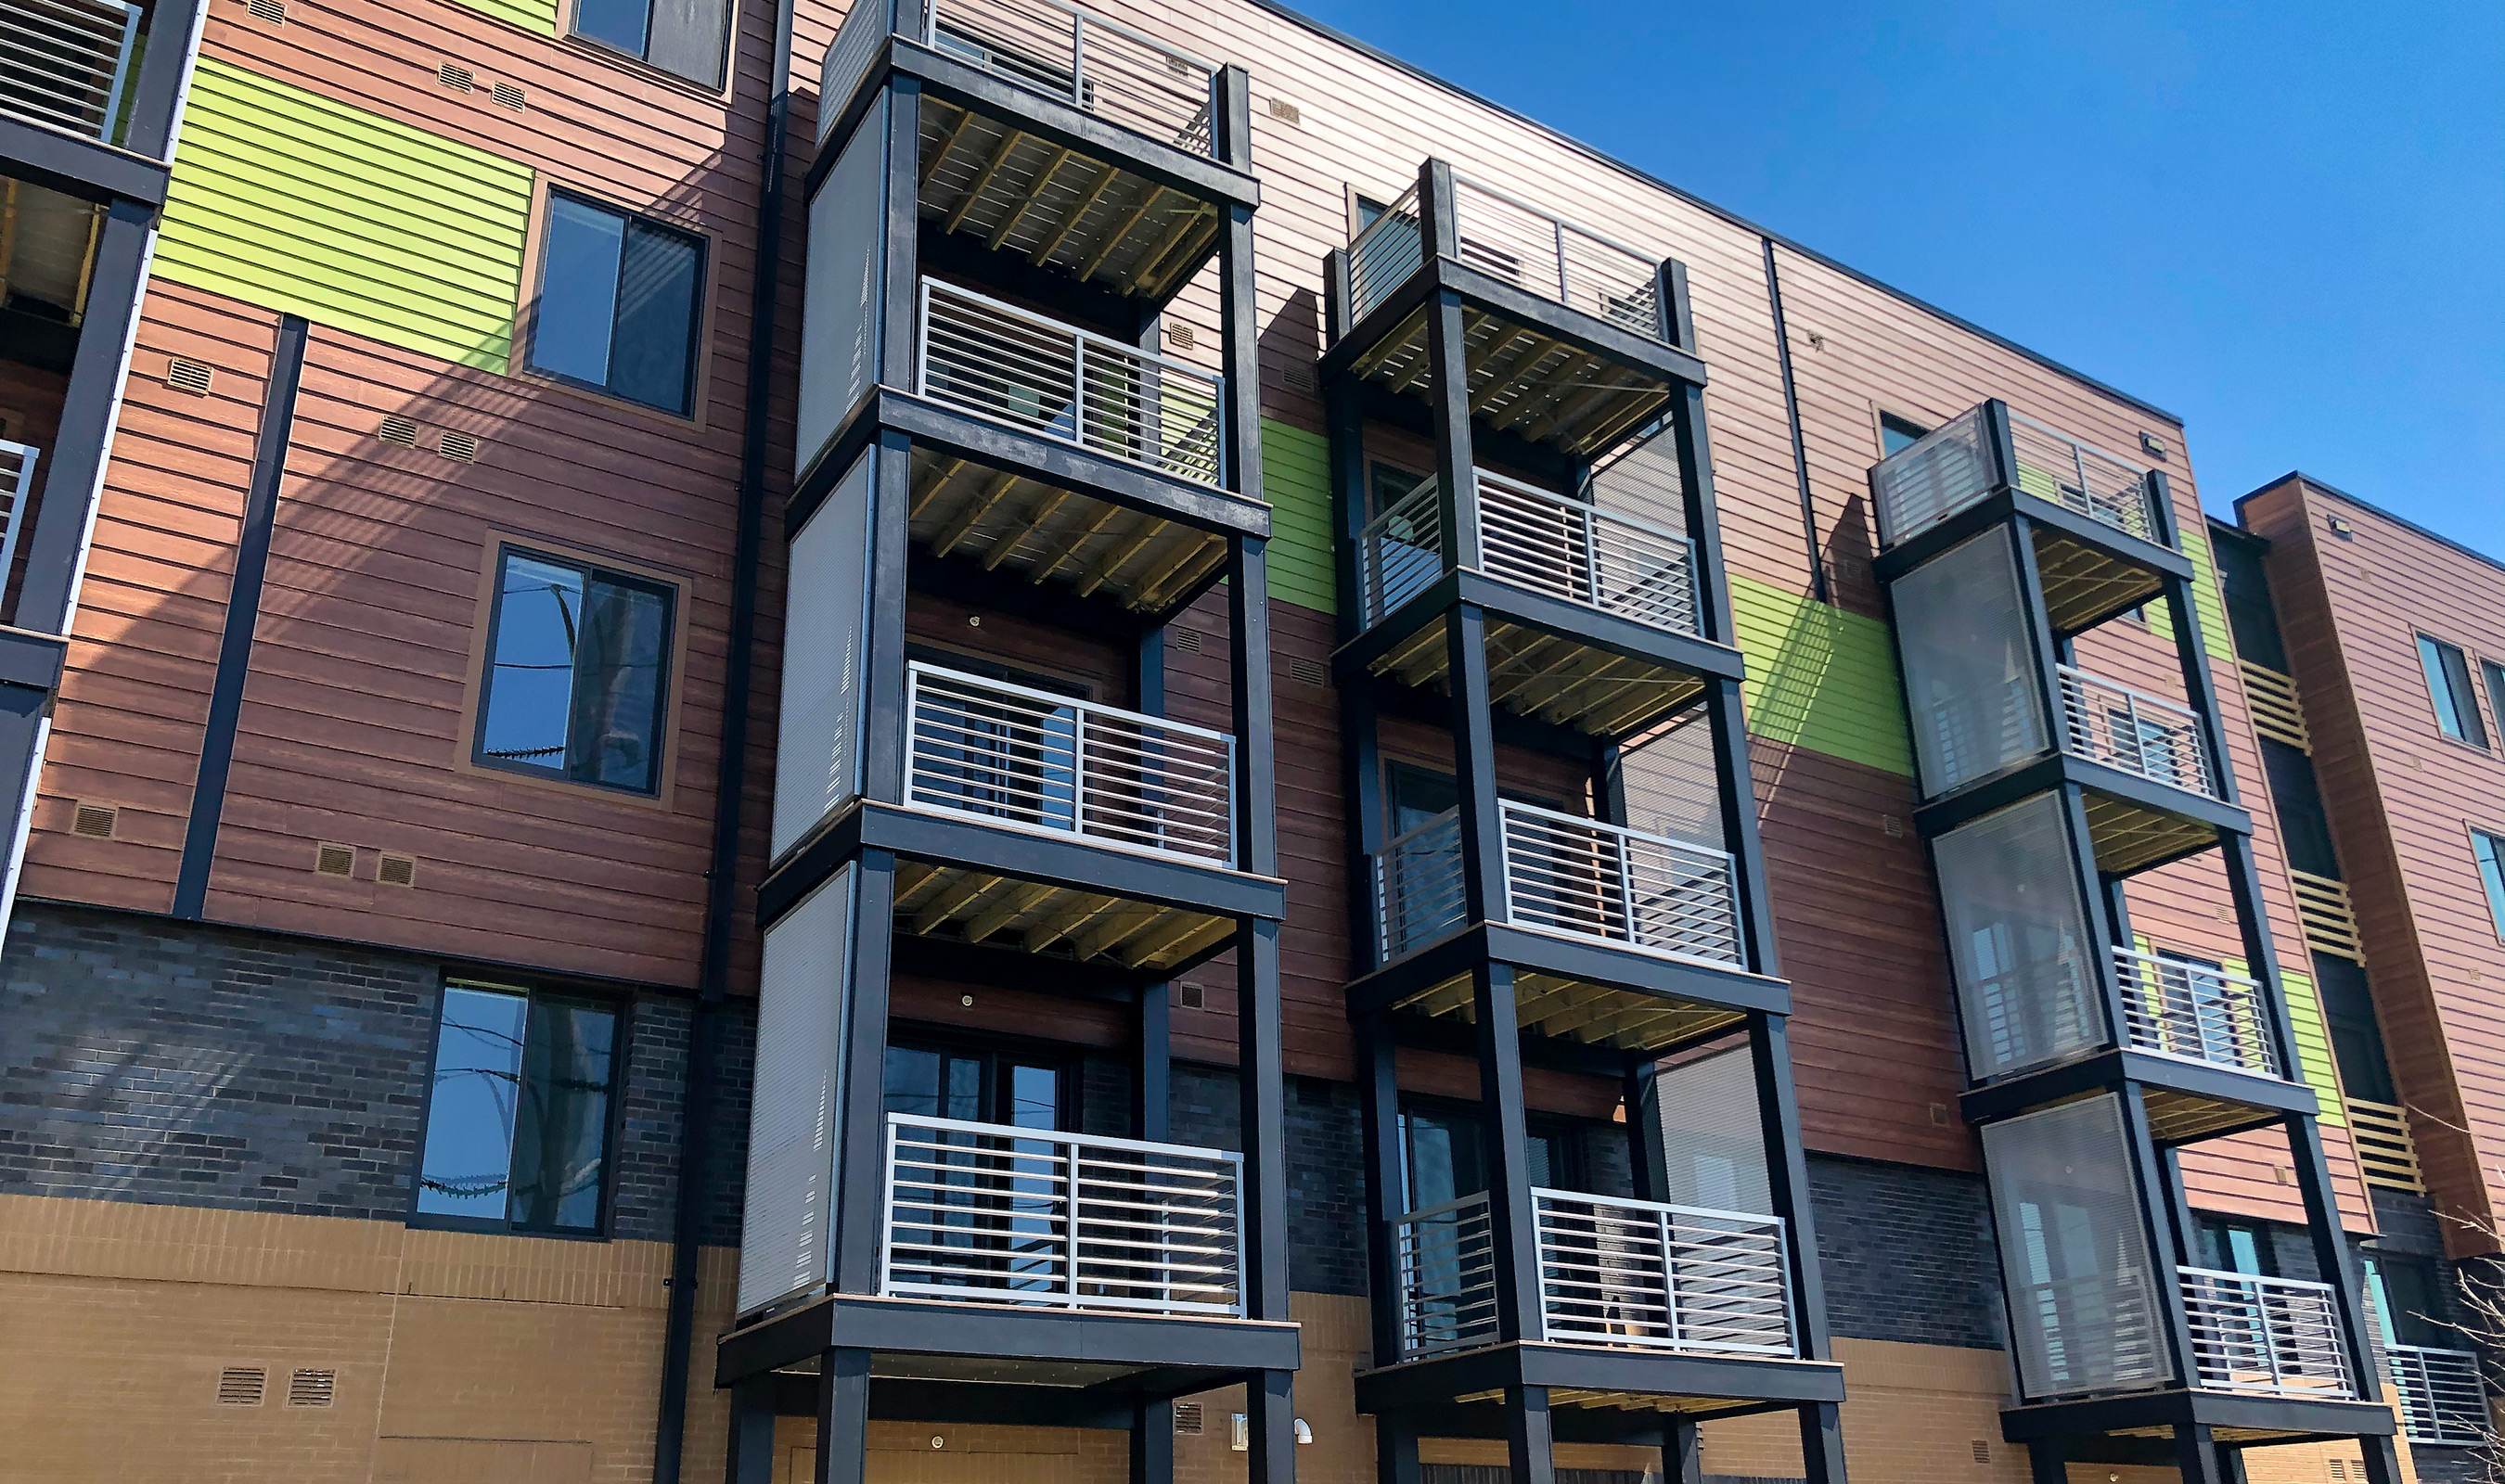 The Apex apartments use Banker Wire's LPZ-54 woven wire mesh as privacy screens on the balconies.